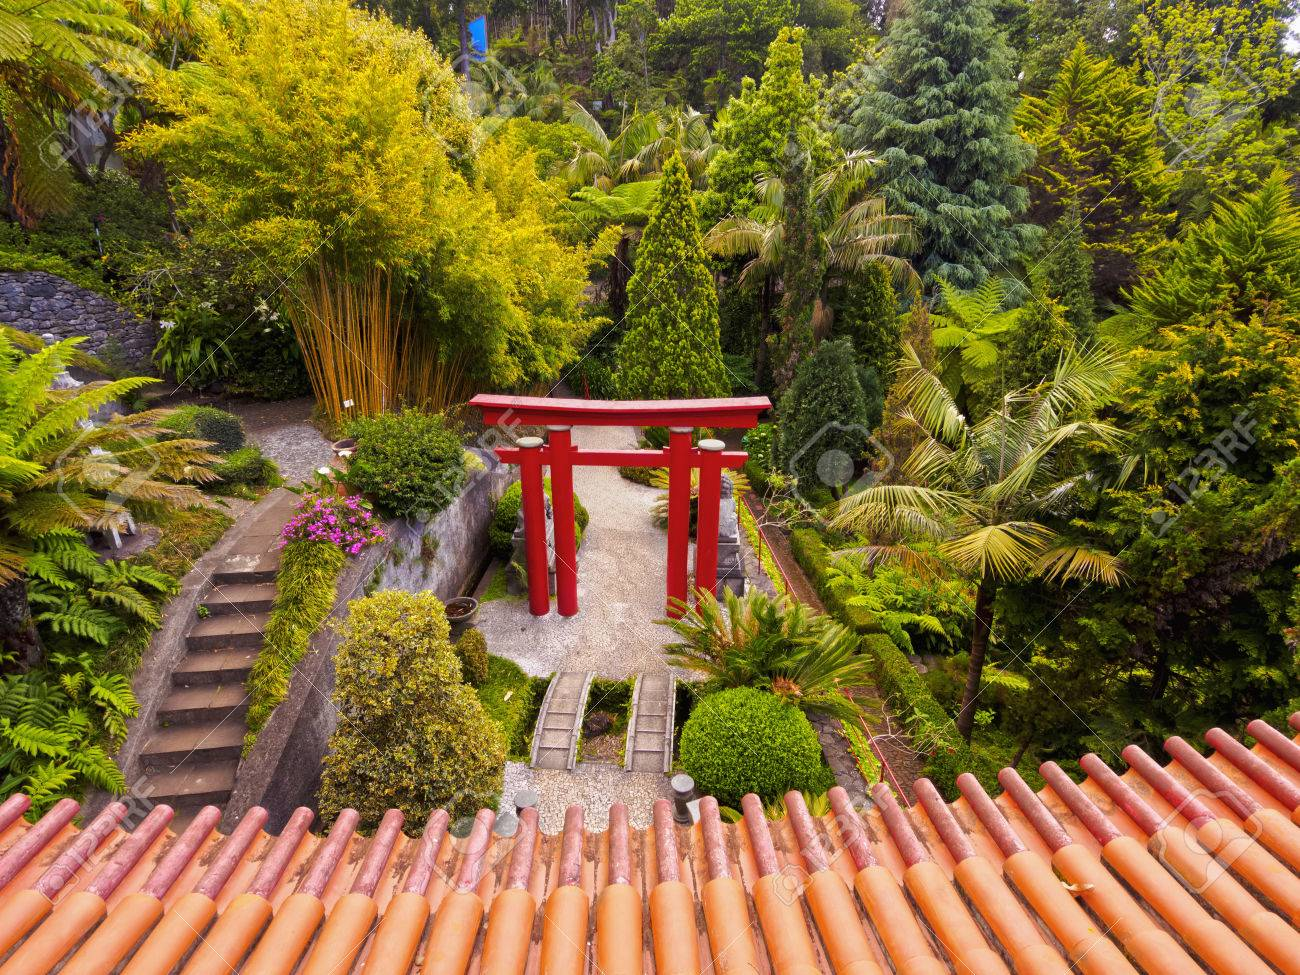 Portugal, Madeira, Funchal, Monte, View Of The Oriental Gardens In The Monte